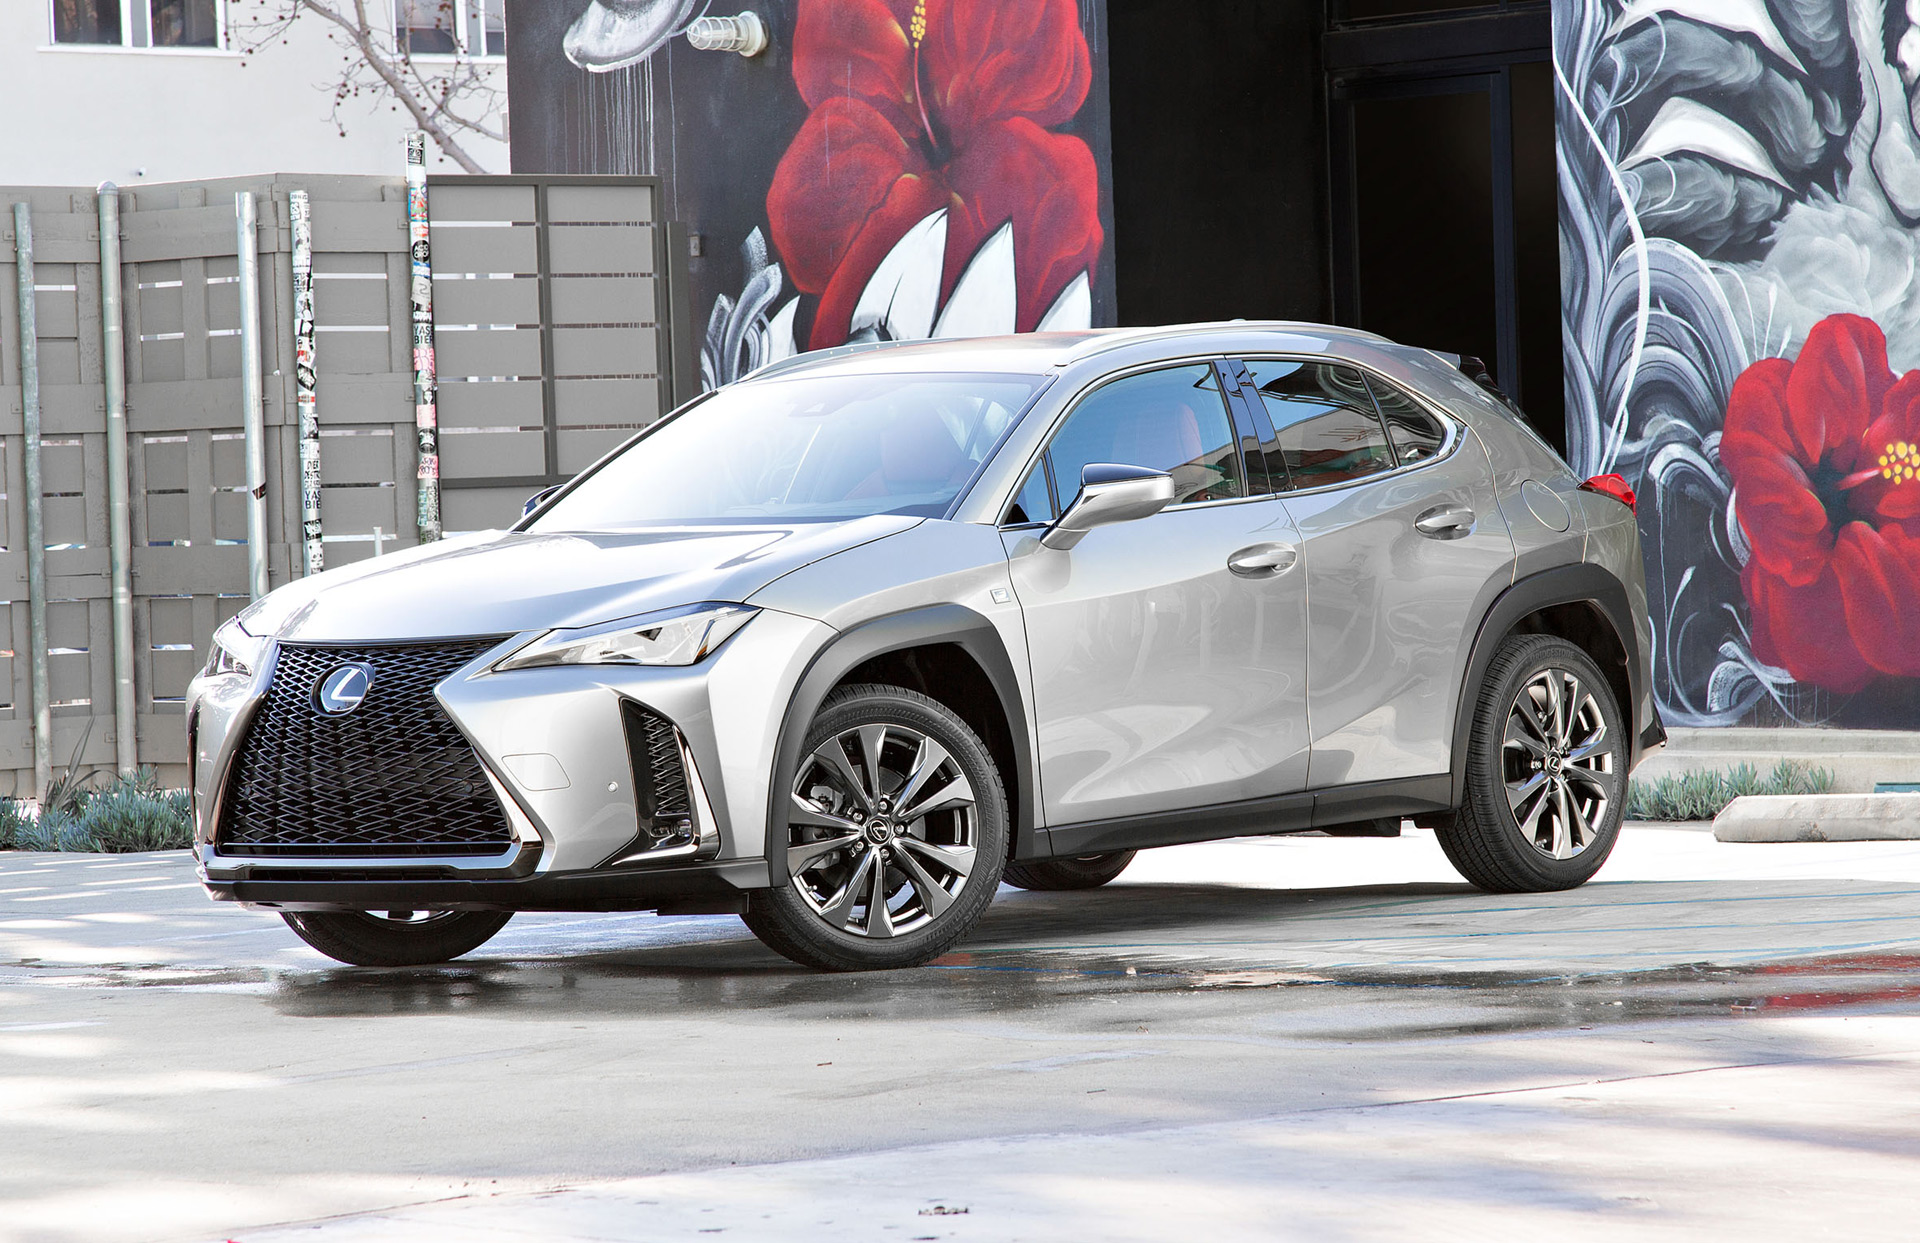 2019 Lexus UX small SUV emerges in US trim, hybrid ...